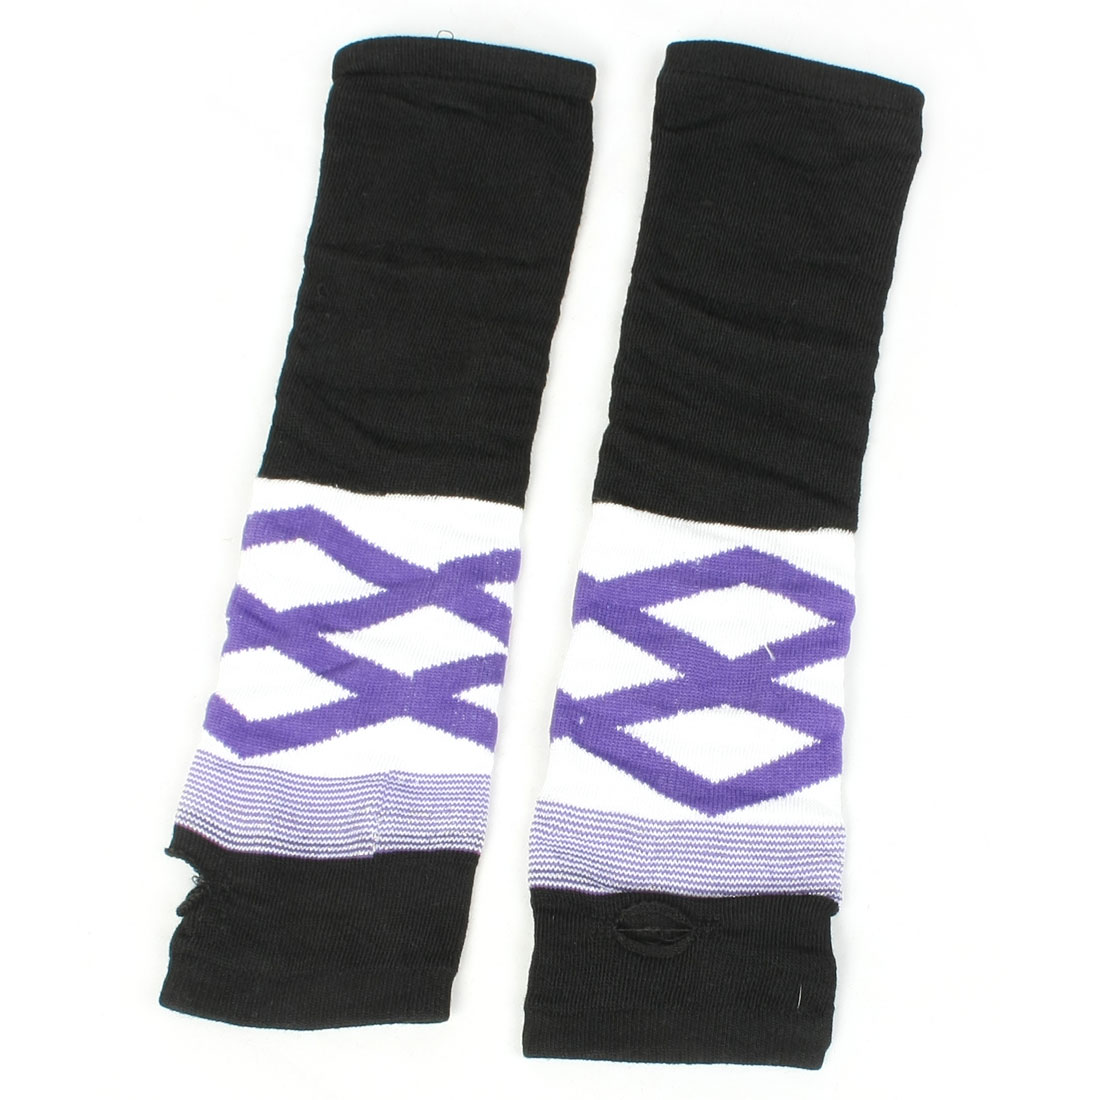 Pair White Purple Rhombus Acrylic Fingerless Arm Warmers Gloves for Women